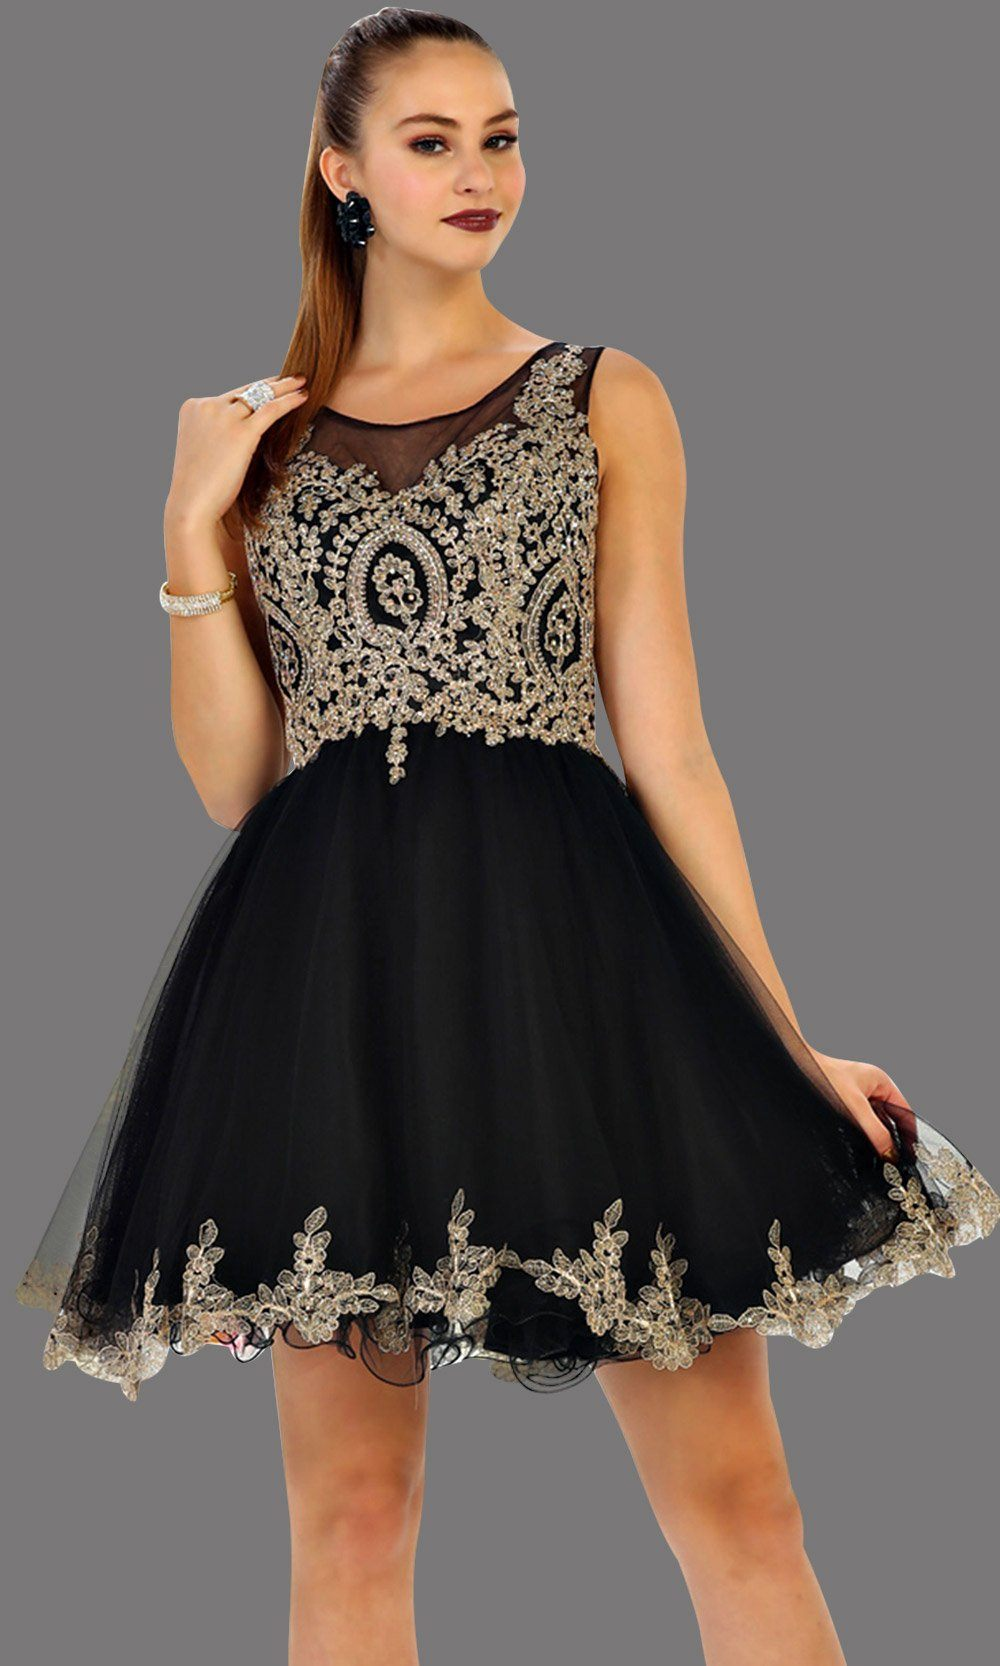 Short high neck black grade 8 grad puffy dress with gold lace. This black grade 8 graduation short dress and pretty. Can be worn for quinceanera damas, short prom dress, bah mitzvah, sweet 16, confirmation.  Avail in plus size